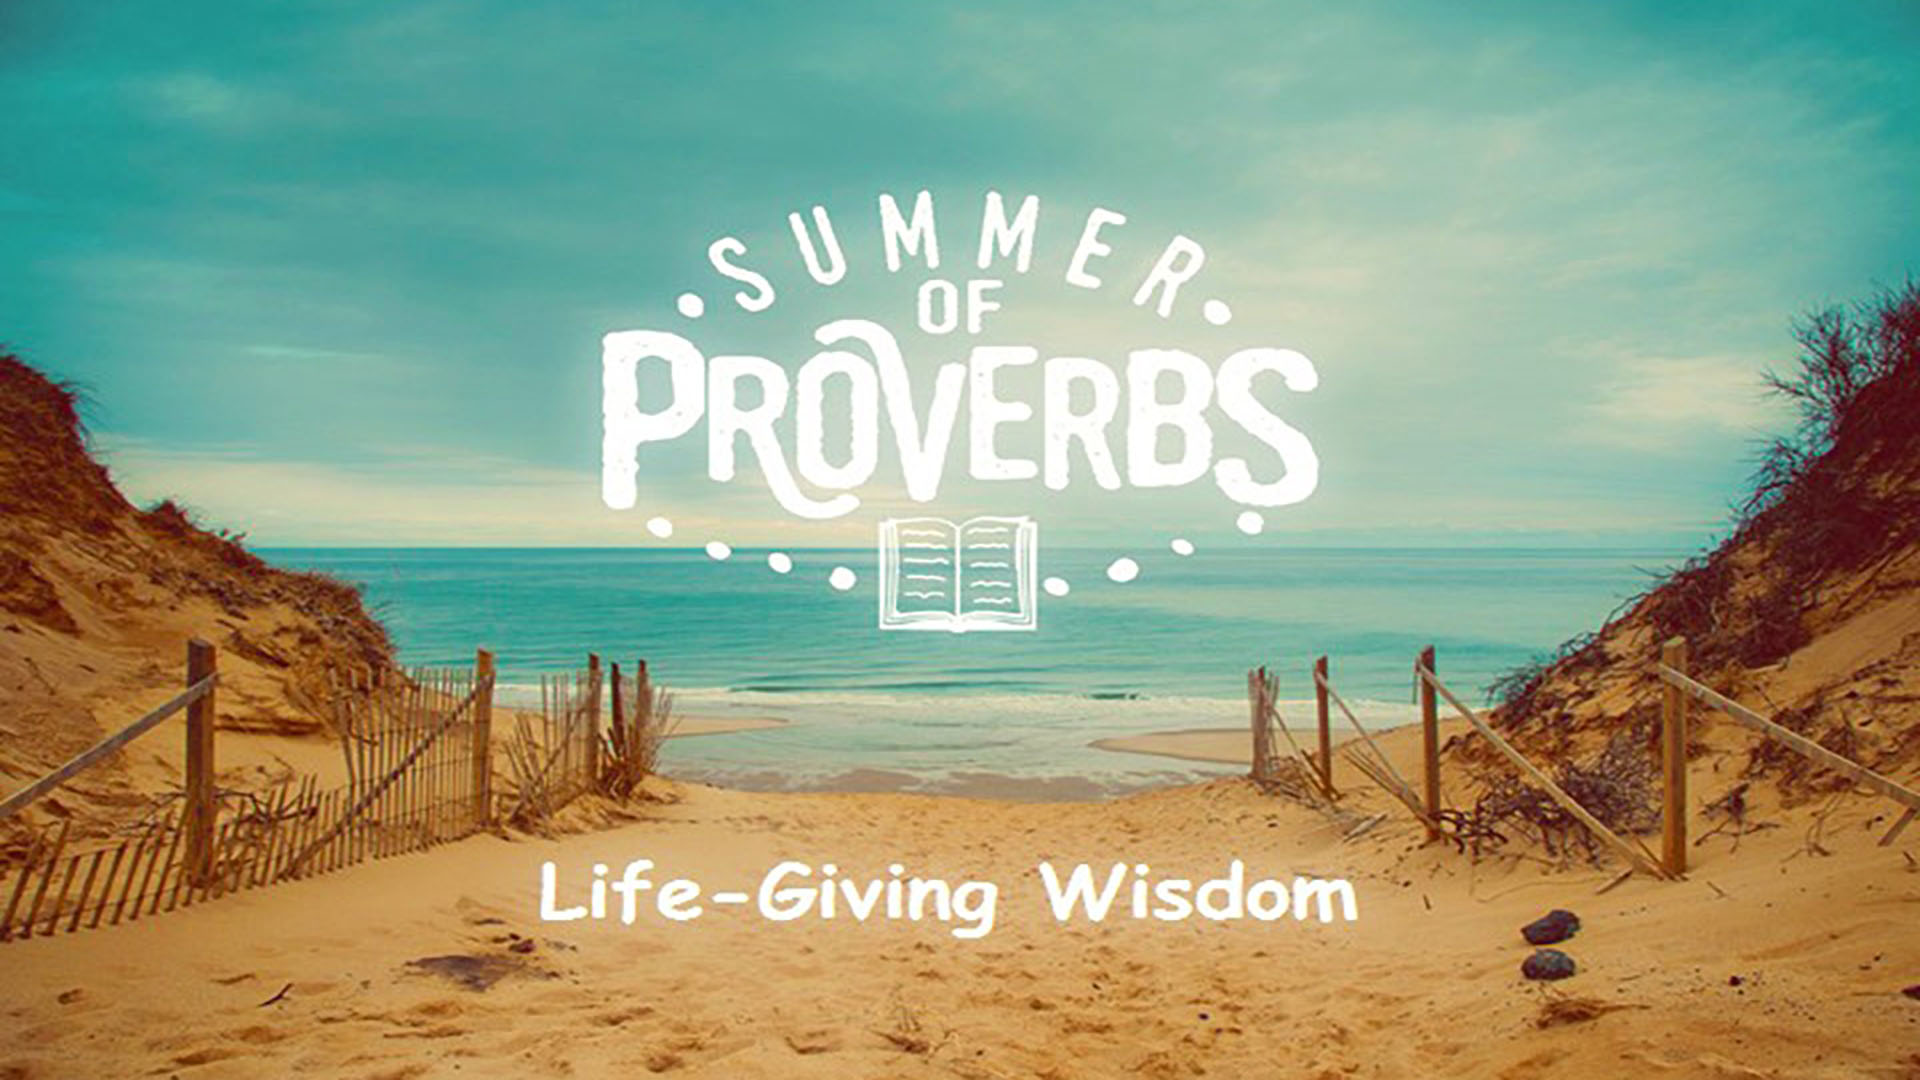 Summer of Proverbs